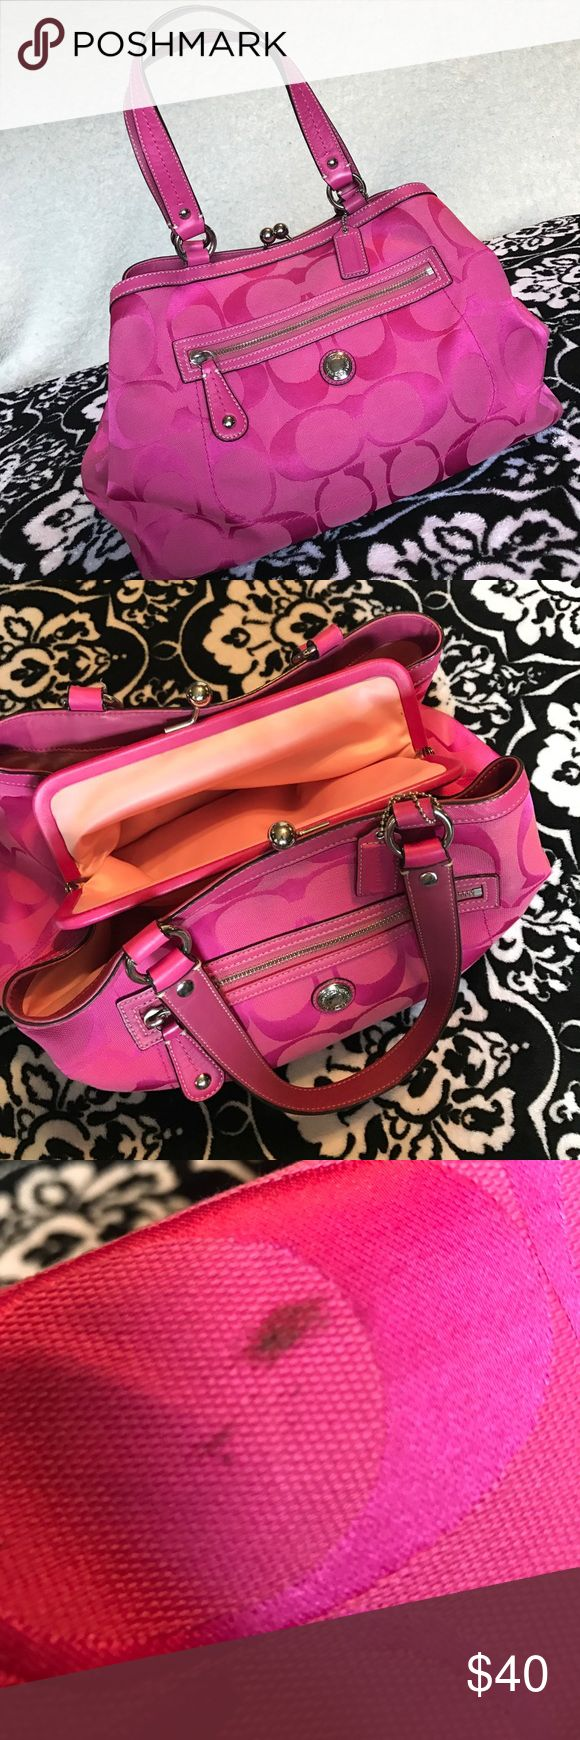 Coach purse Pink coach purse! Exterior in great condition. Lining has some staining and there is a spot on the back of the bag- everything pictured. Beautiful color. Coach Bags Totes